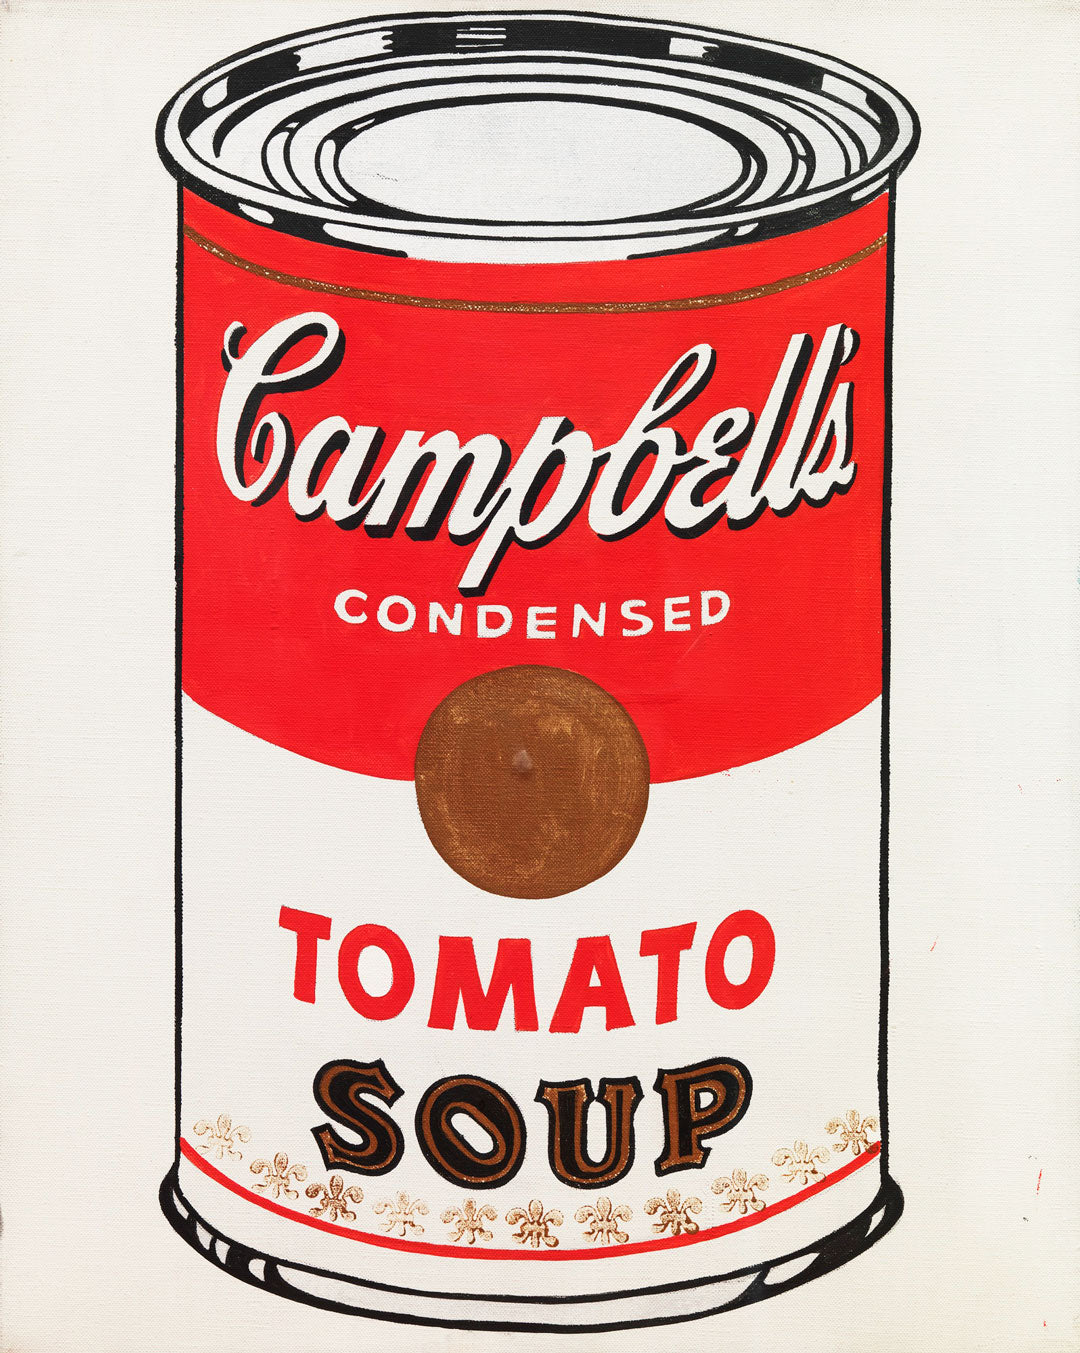 Campbells soup can painting by Andy Warhol